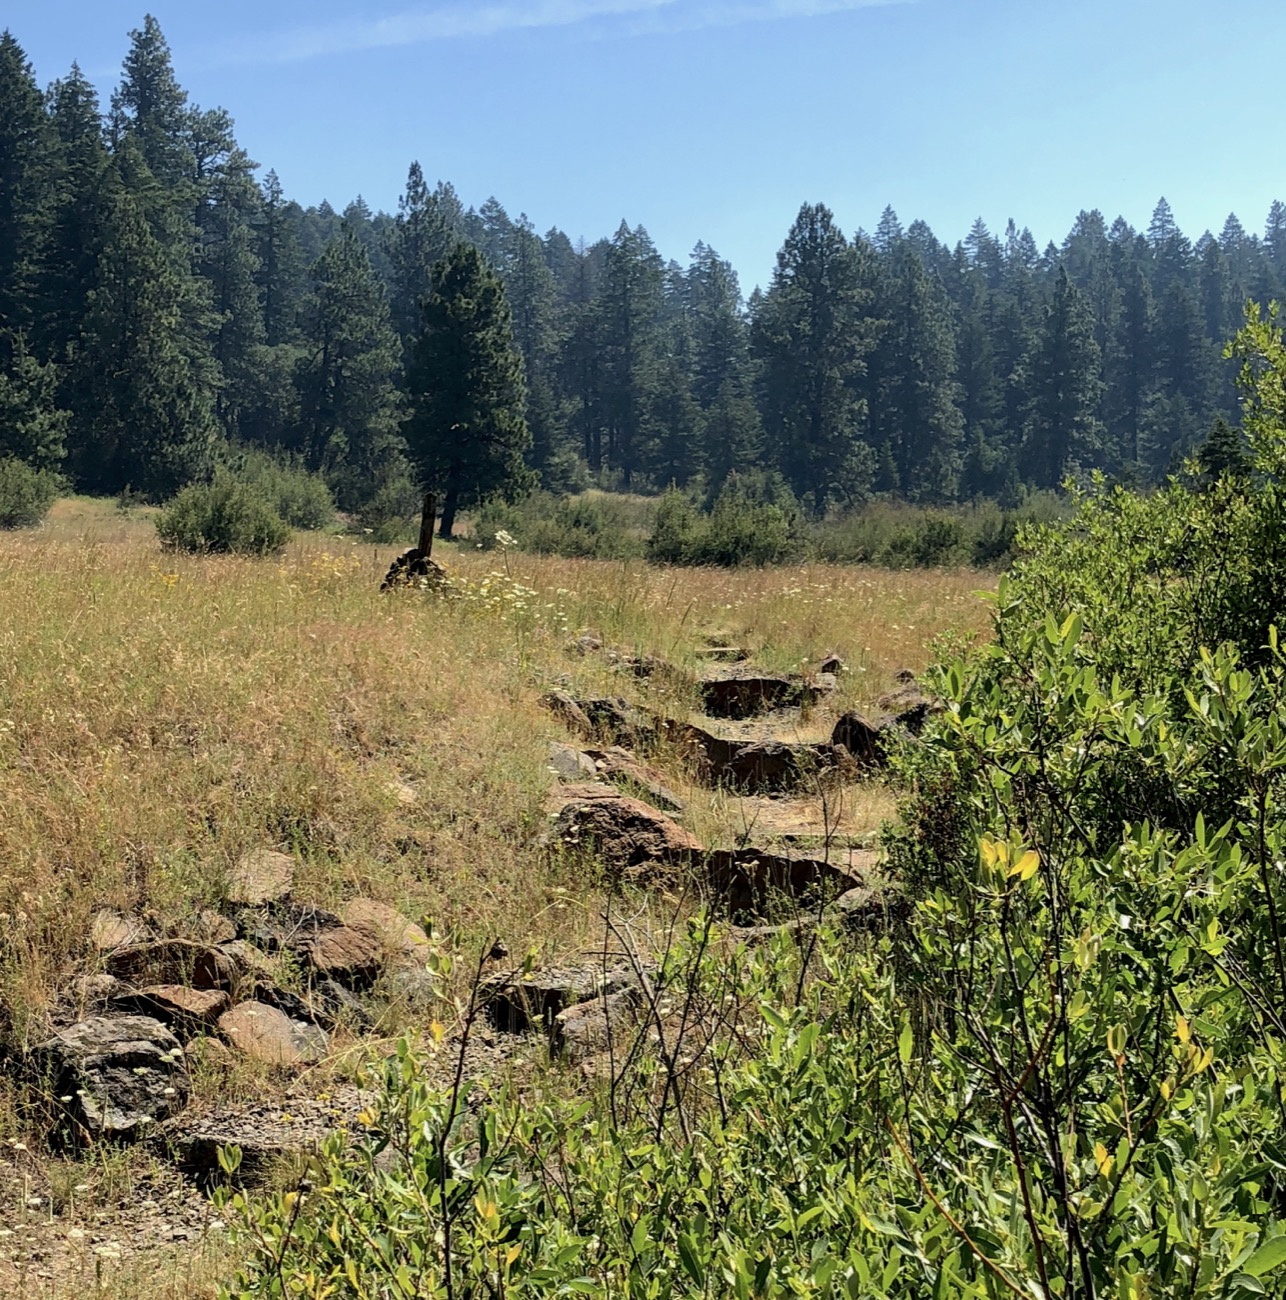 The Pacific Crest Trail from Greensprings to Hyatt